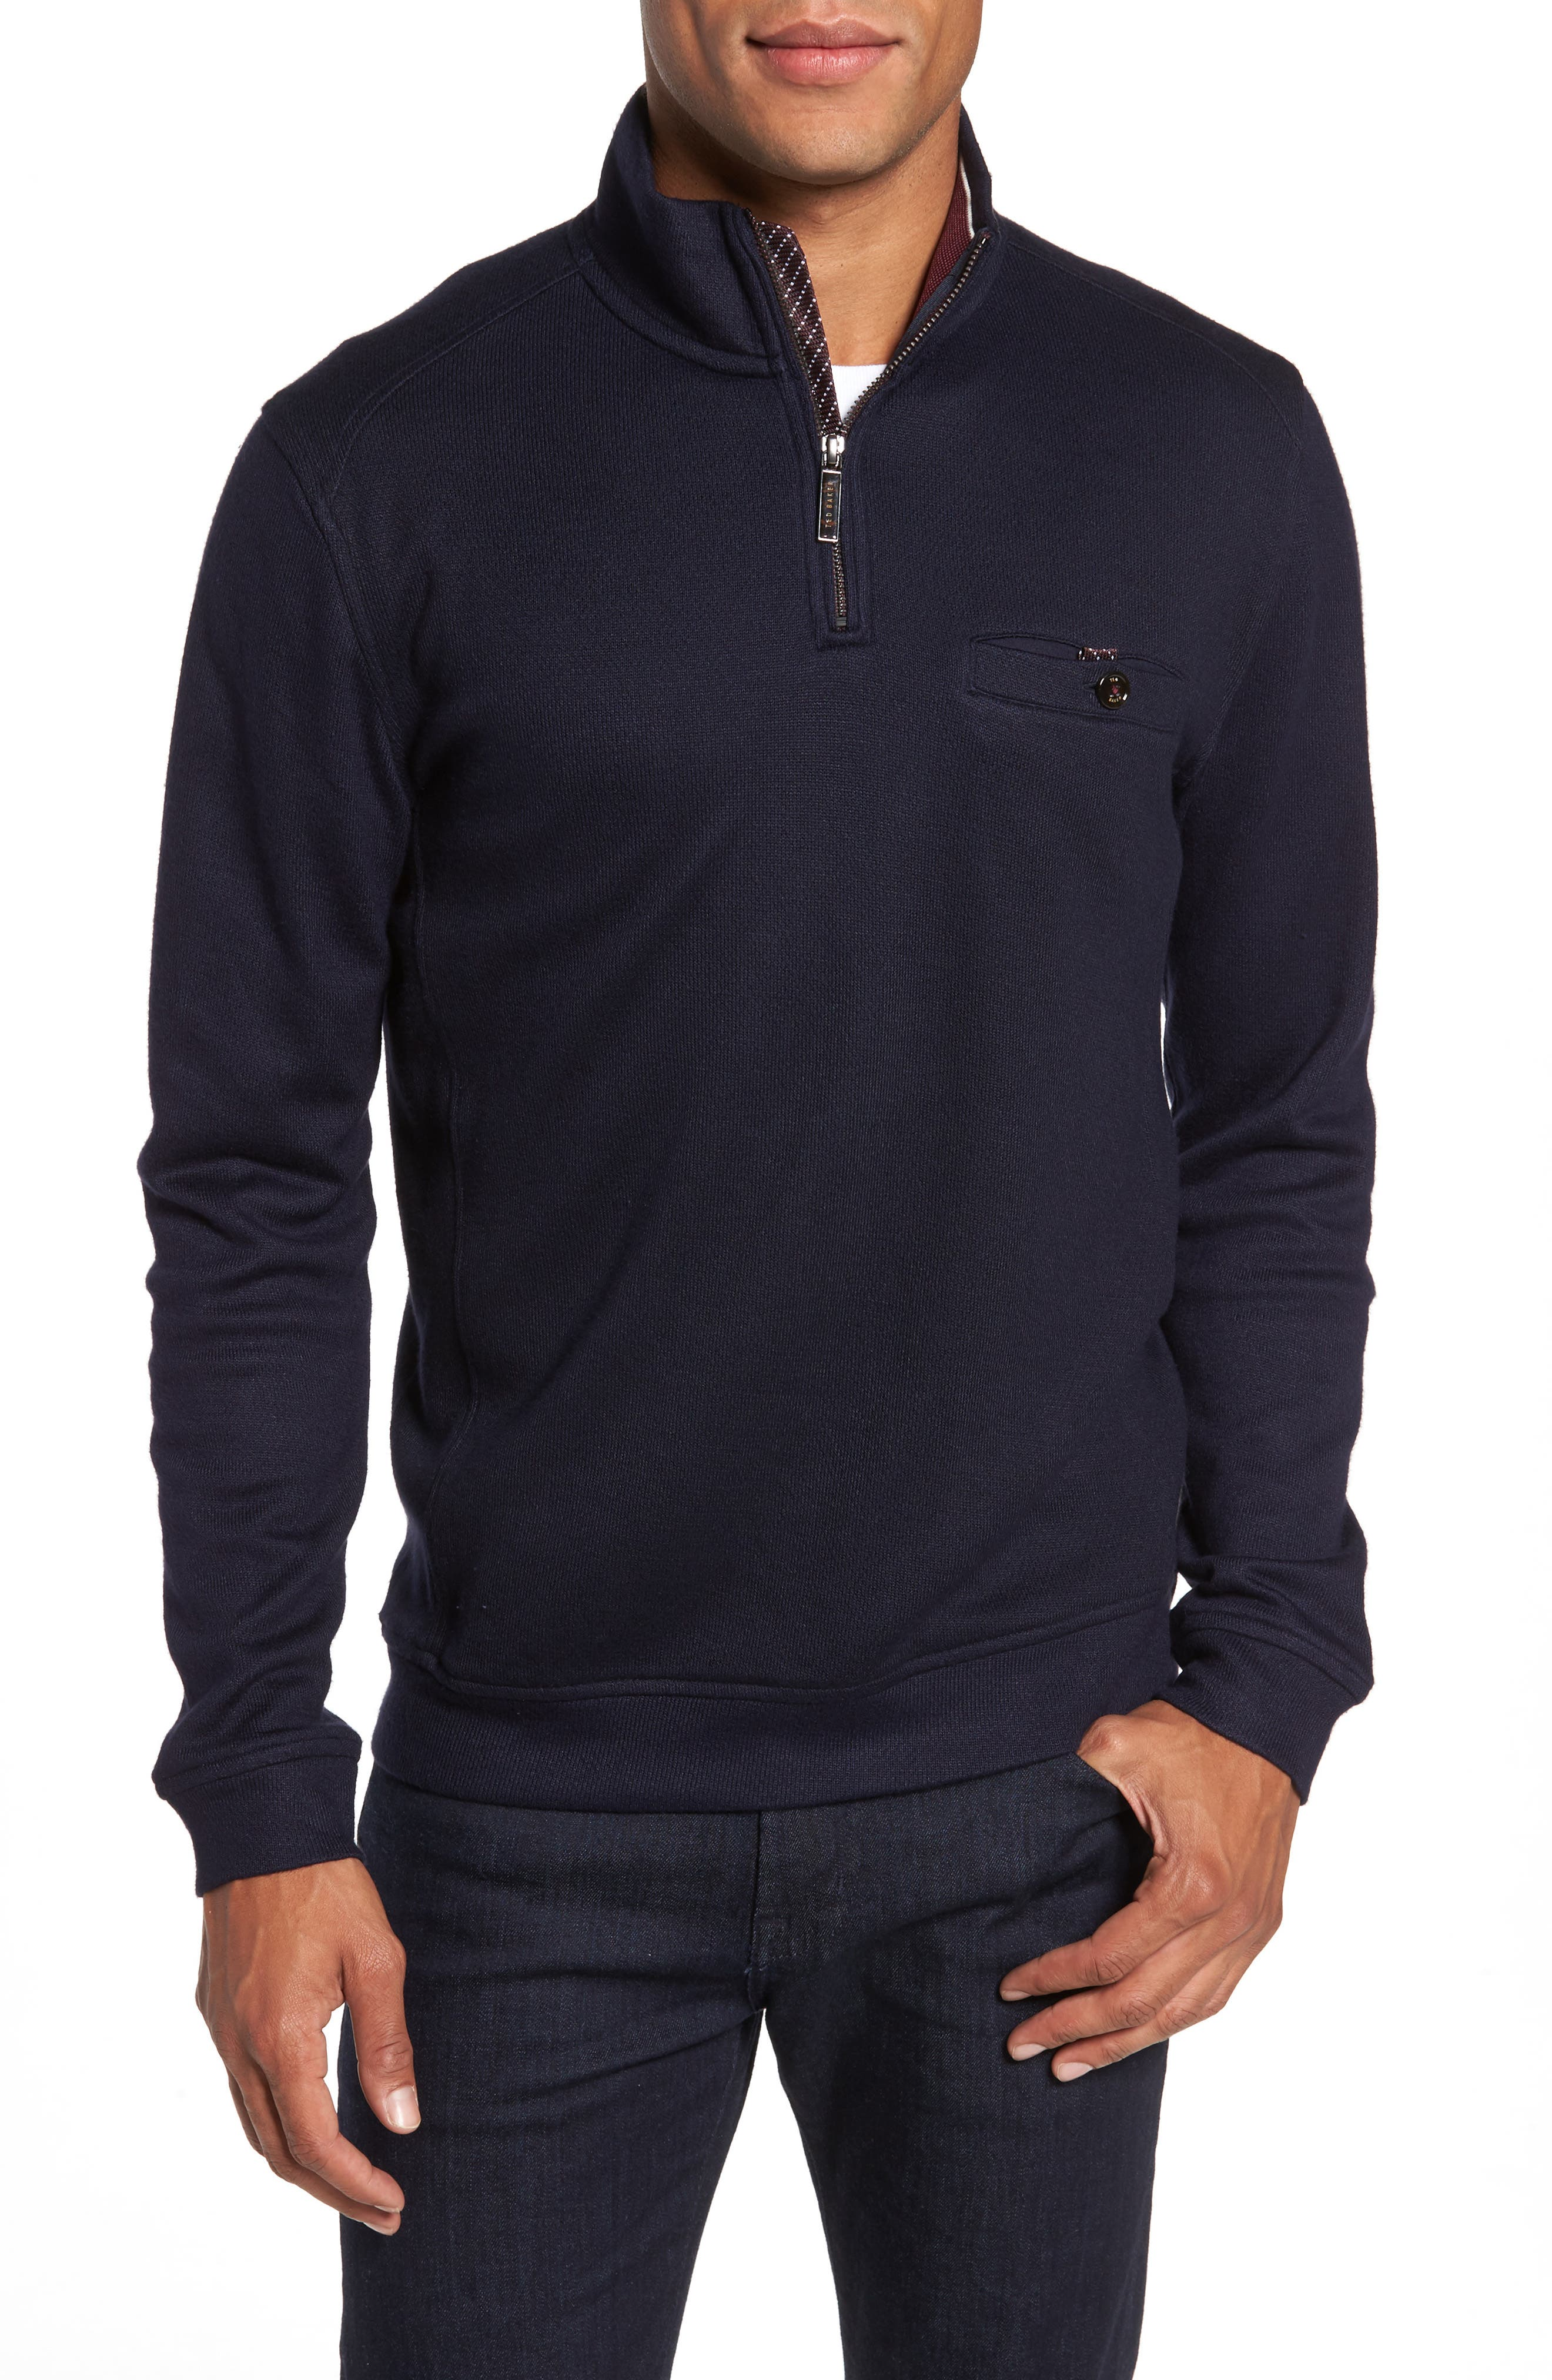 Dotkot Slim Fit Quarter Zip Pullover,                         Main,                         color, Navy